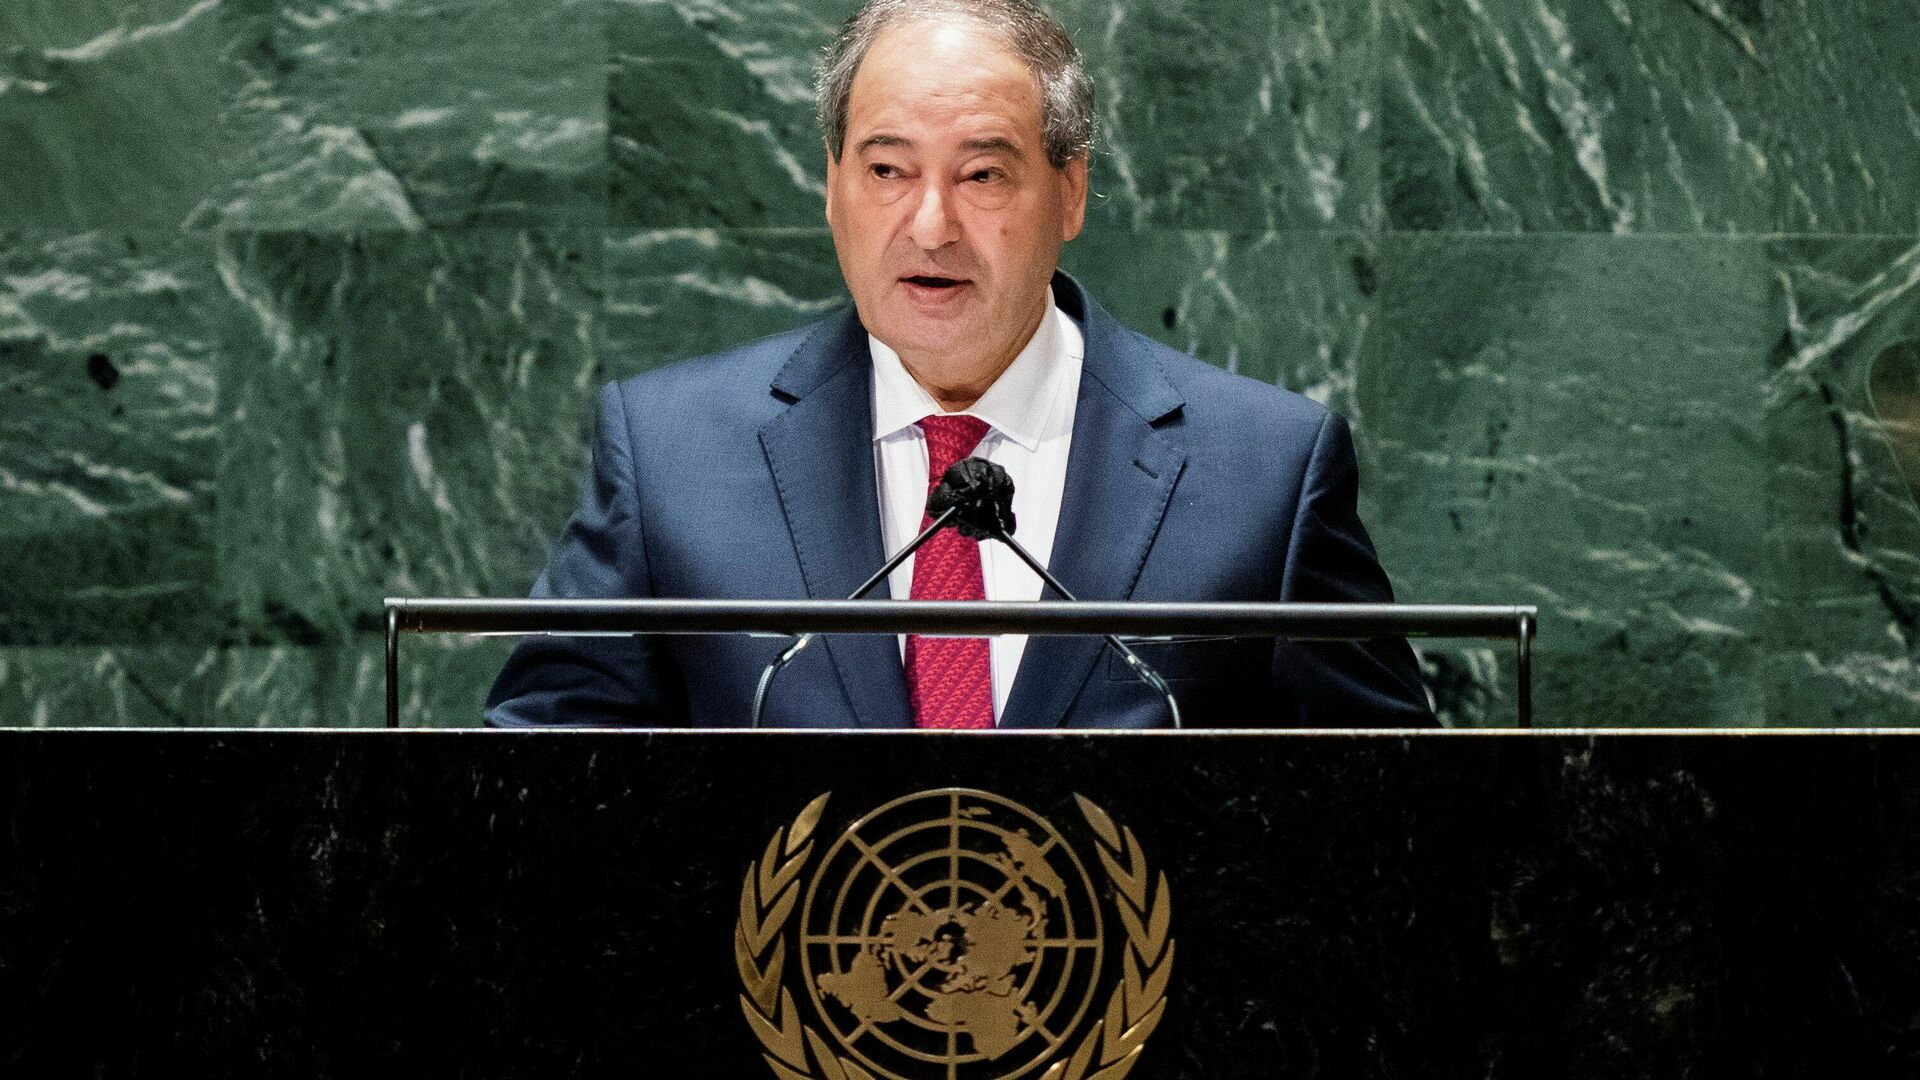 Syria's foreign minister Faisal Mekdad addresses the 76th Session of the United Nations General Assembly, at the U.N. headquarters in New York, U.S., September 27, 2021 - Sputnik International, 1920, 27.09.2021